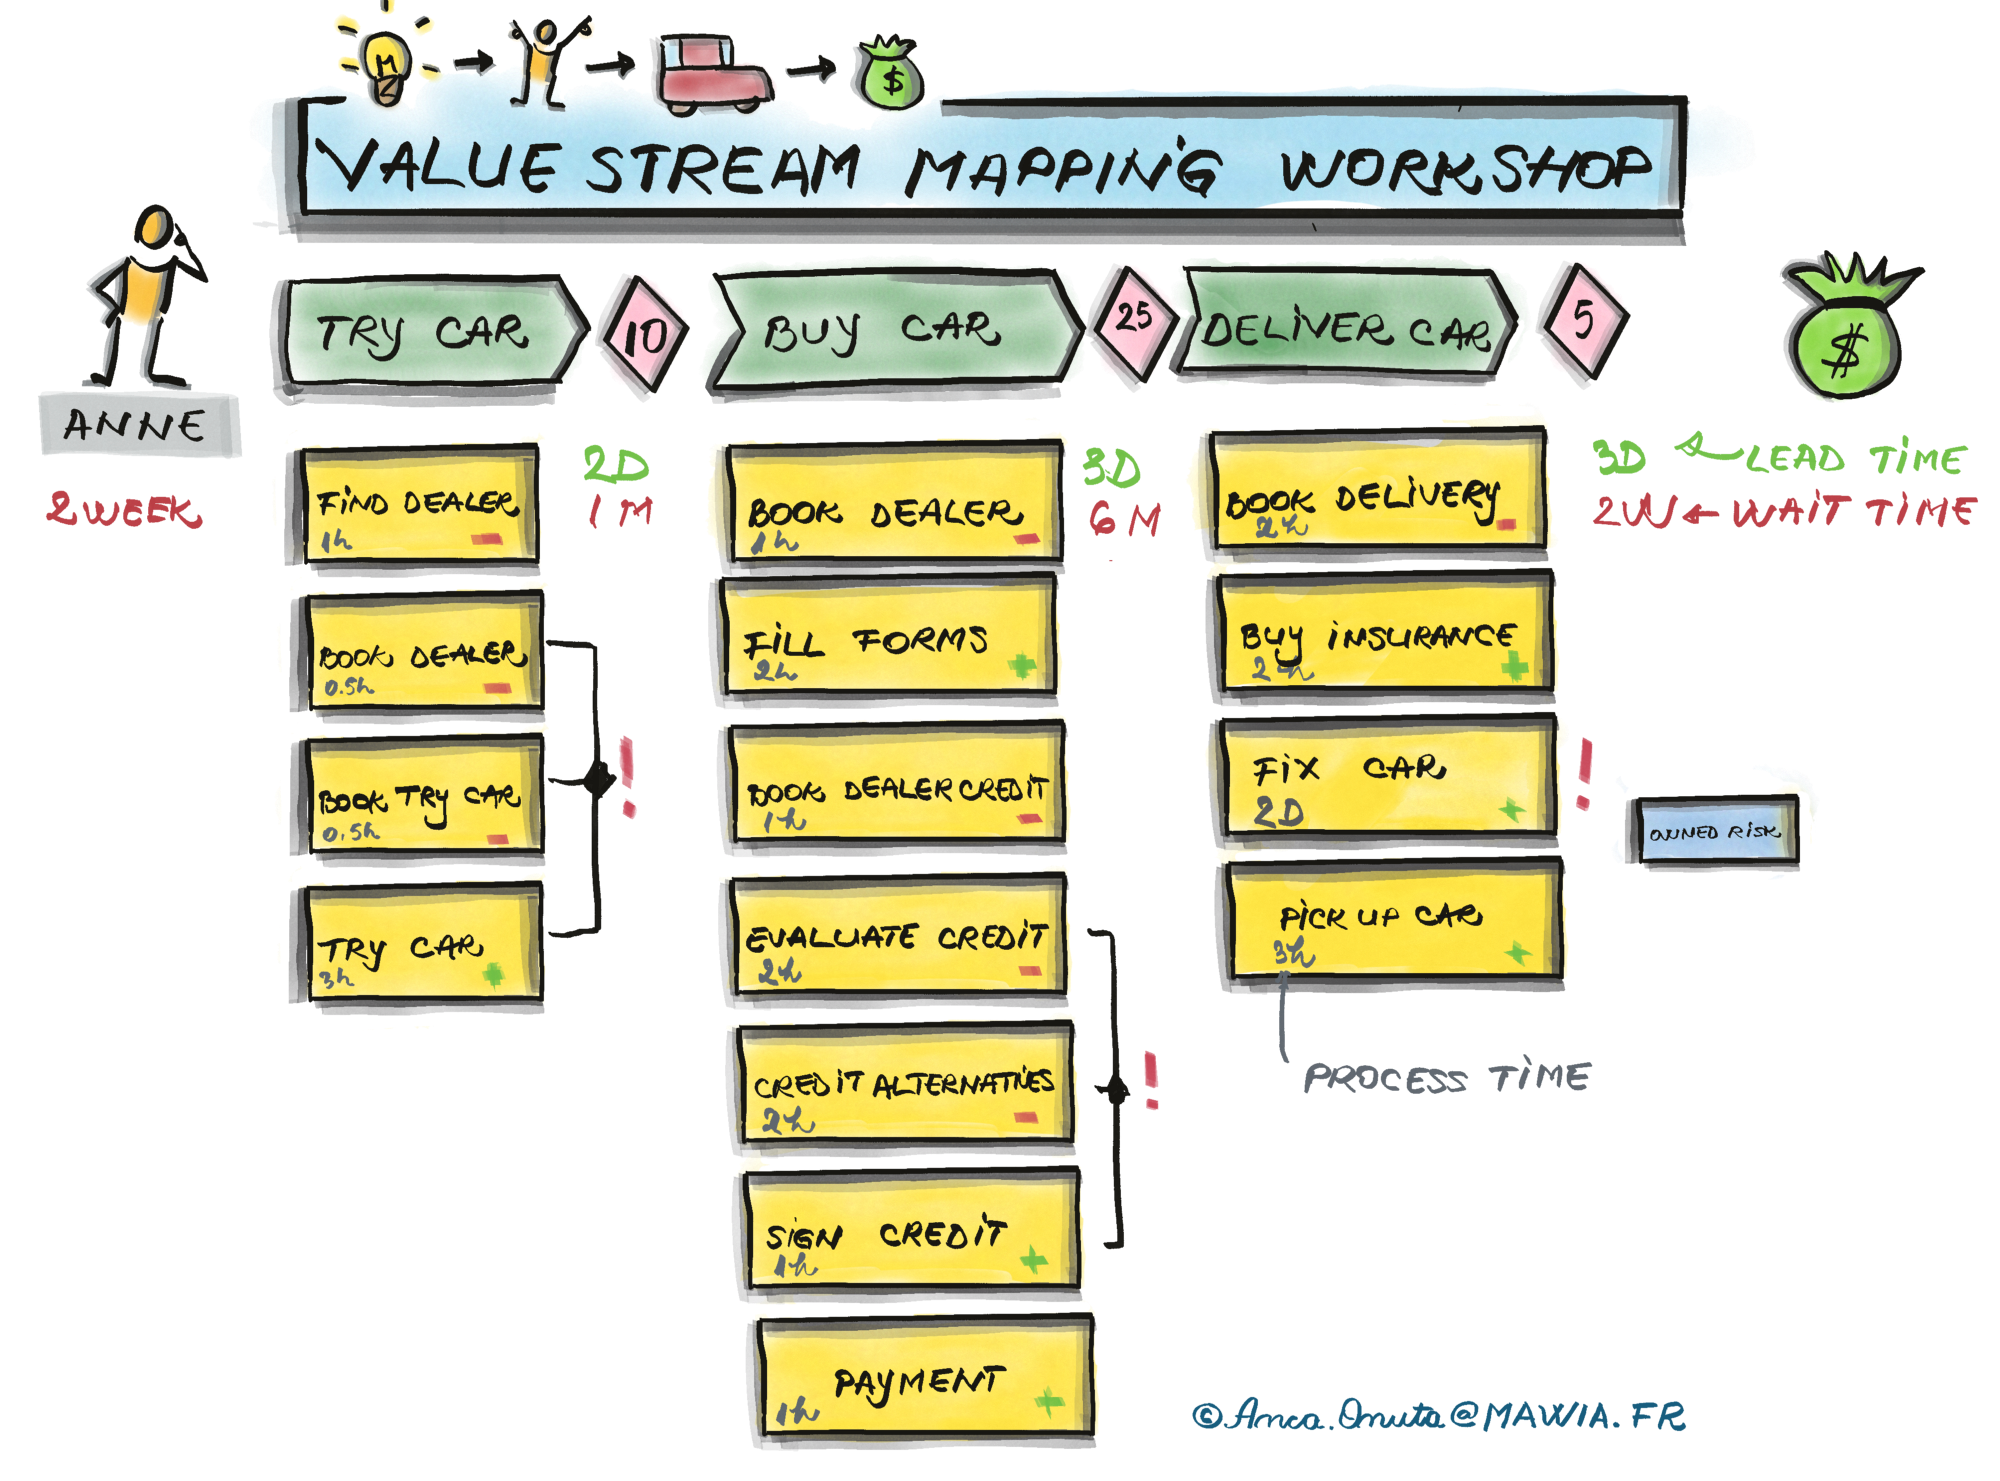 Remote Value Streams Mapping Workshop—the steps, the actors and the tools